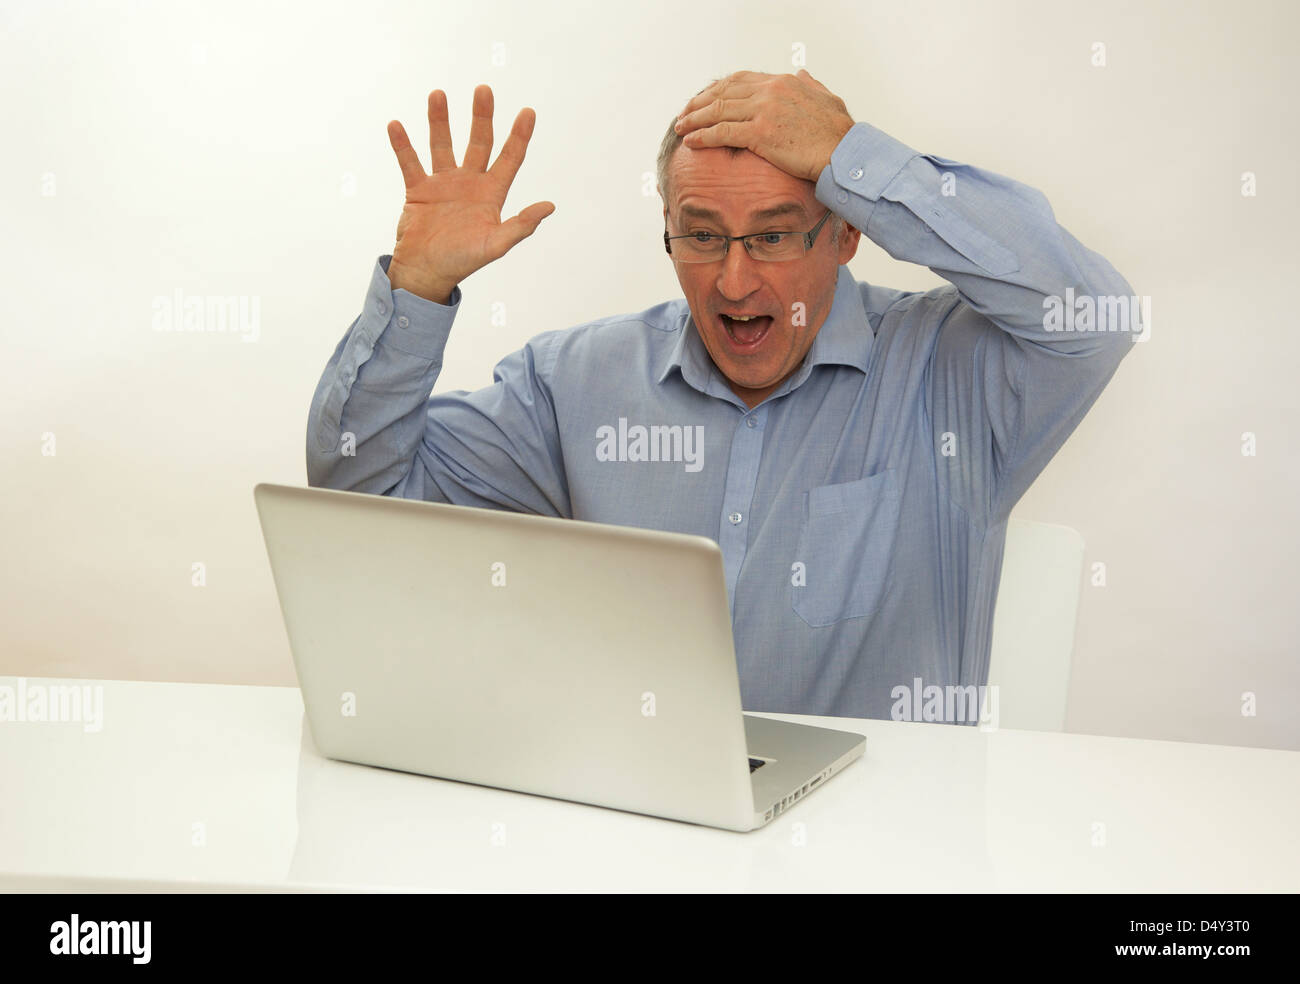 Overjoyed man hand on head looking at a laptop screen, happy that he has won a prize. - Stock Image